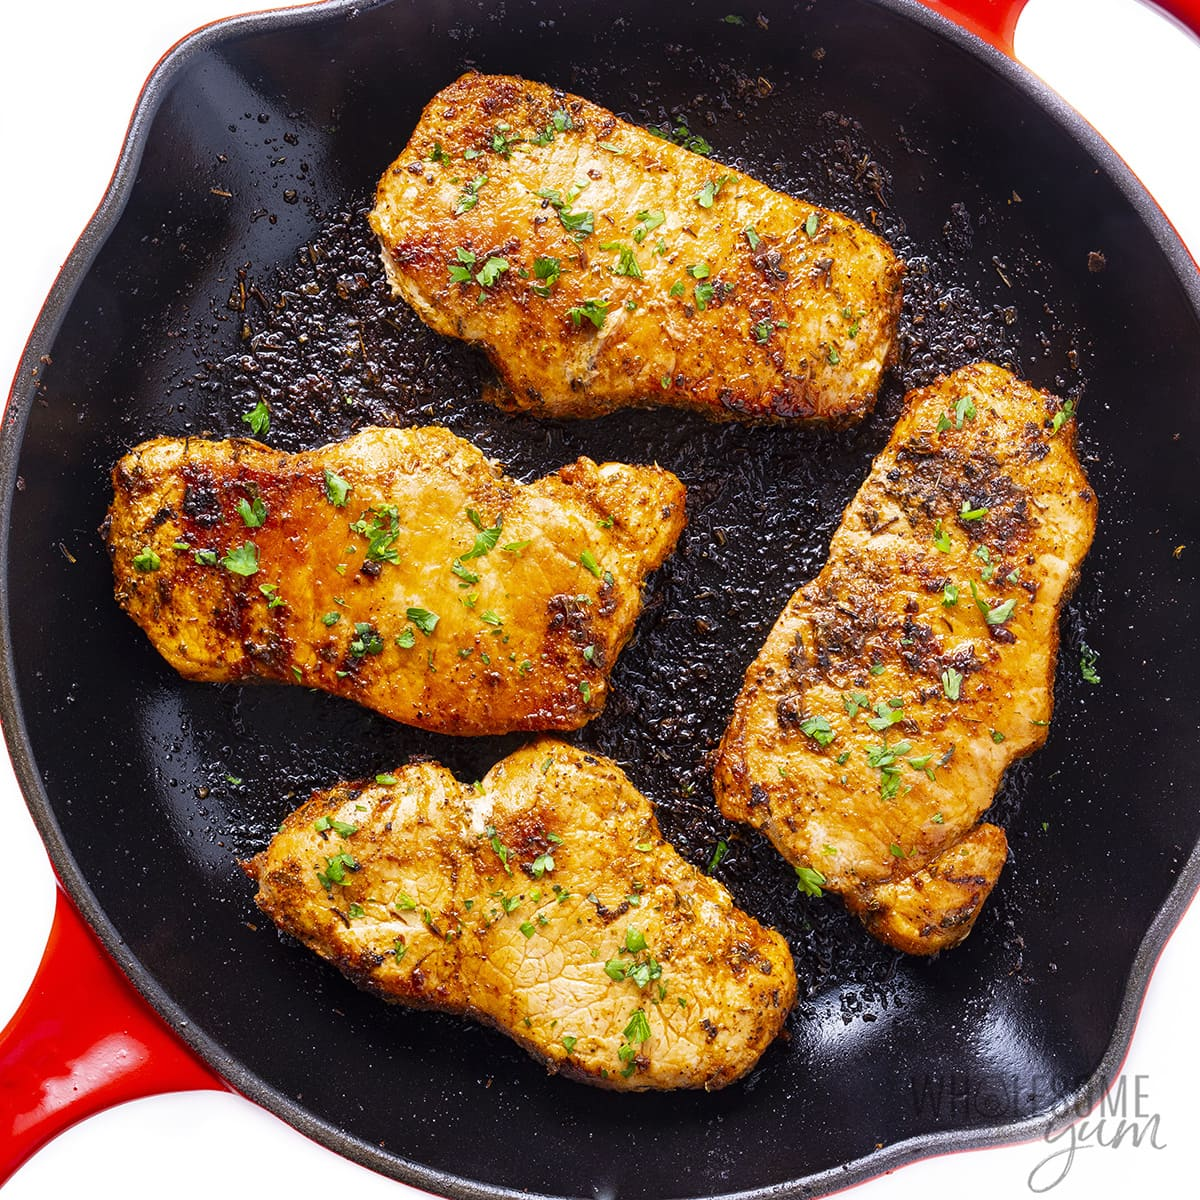 Pork chops in a cast iron skillet cooking